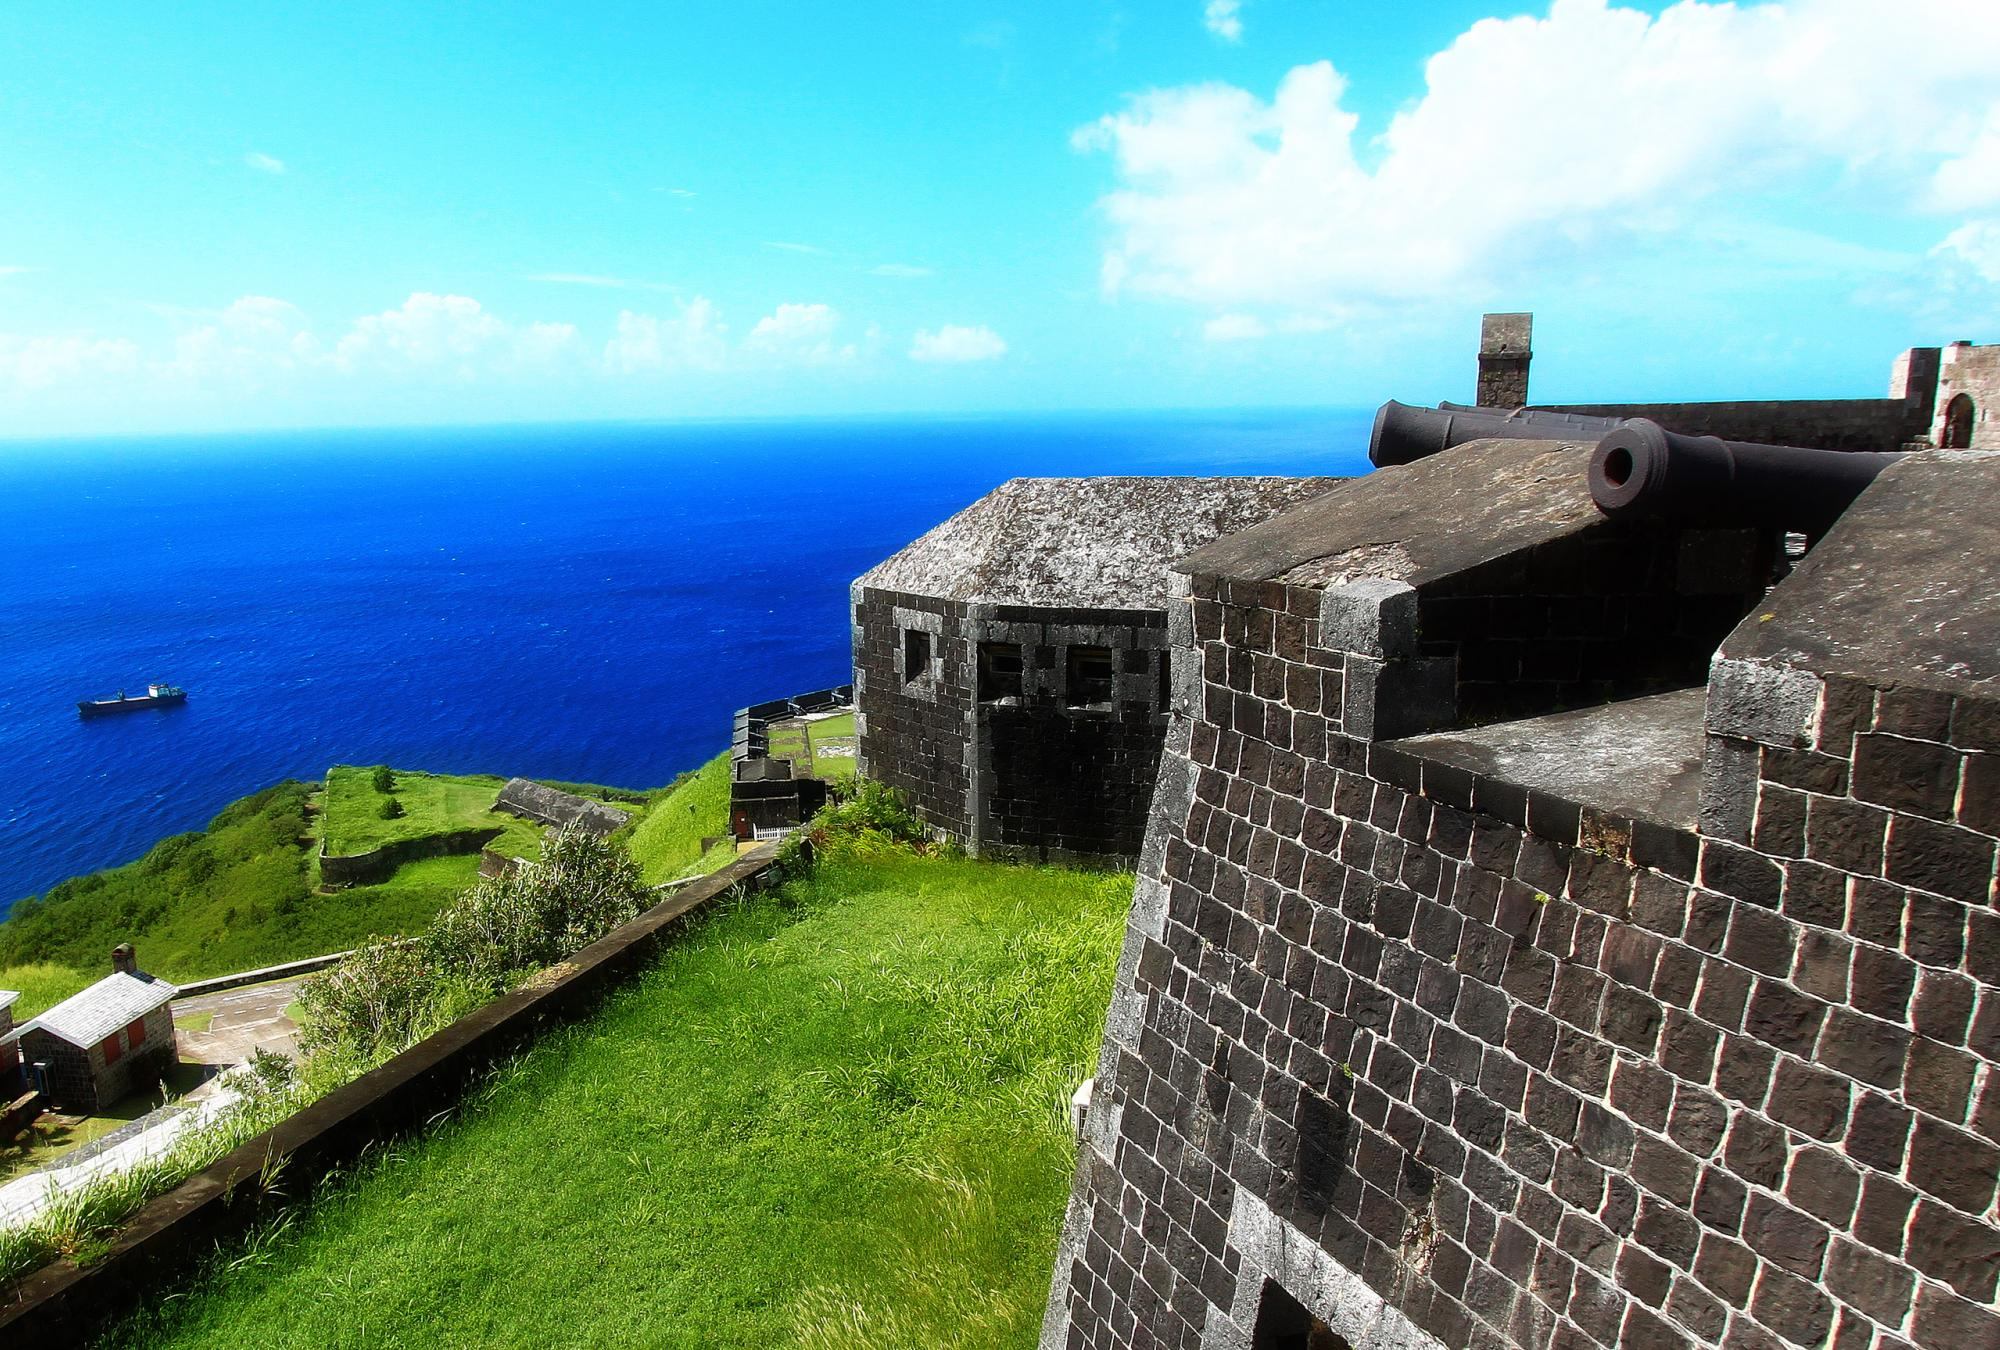 Photo of Brimstone Hill Fortress, St. Kitts